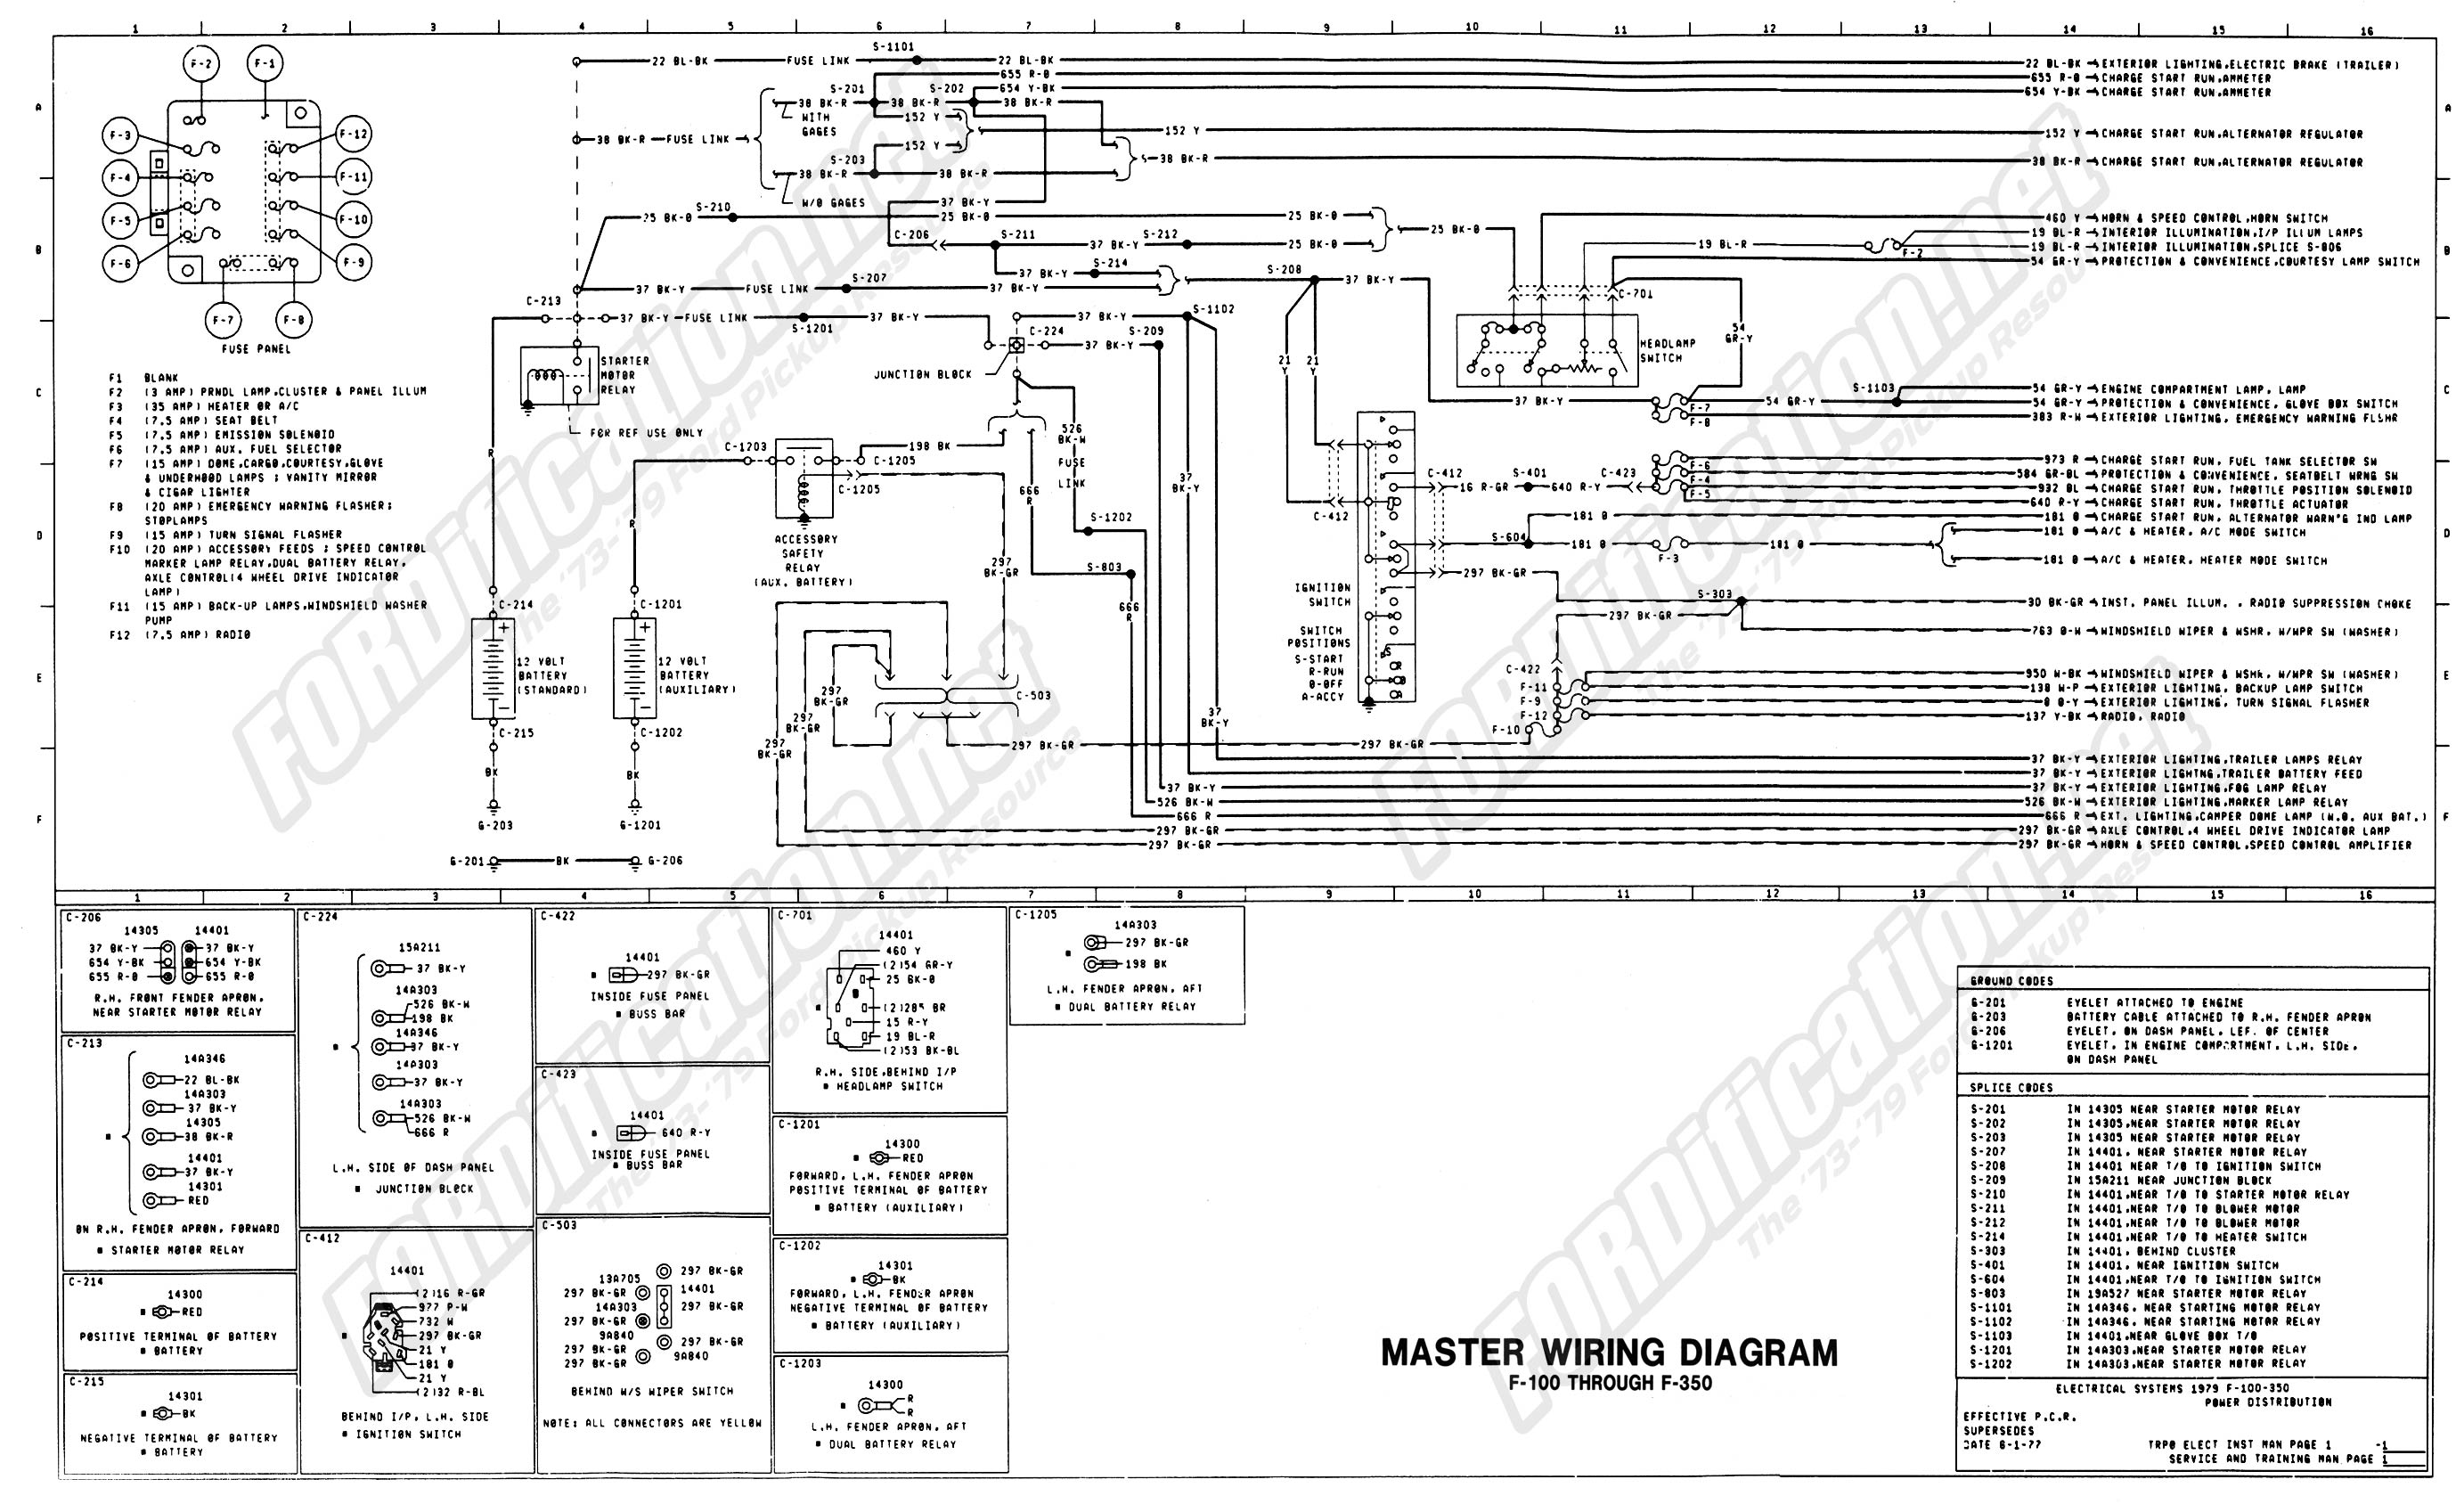 Freightliner Step Van Wiring Diagram Simple Guide About Halsey Taylor 1979 F100 Ignition Switch Positions Ford